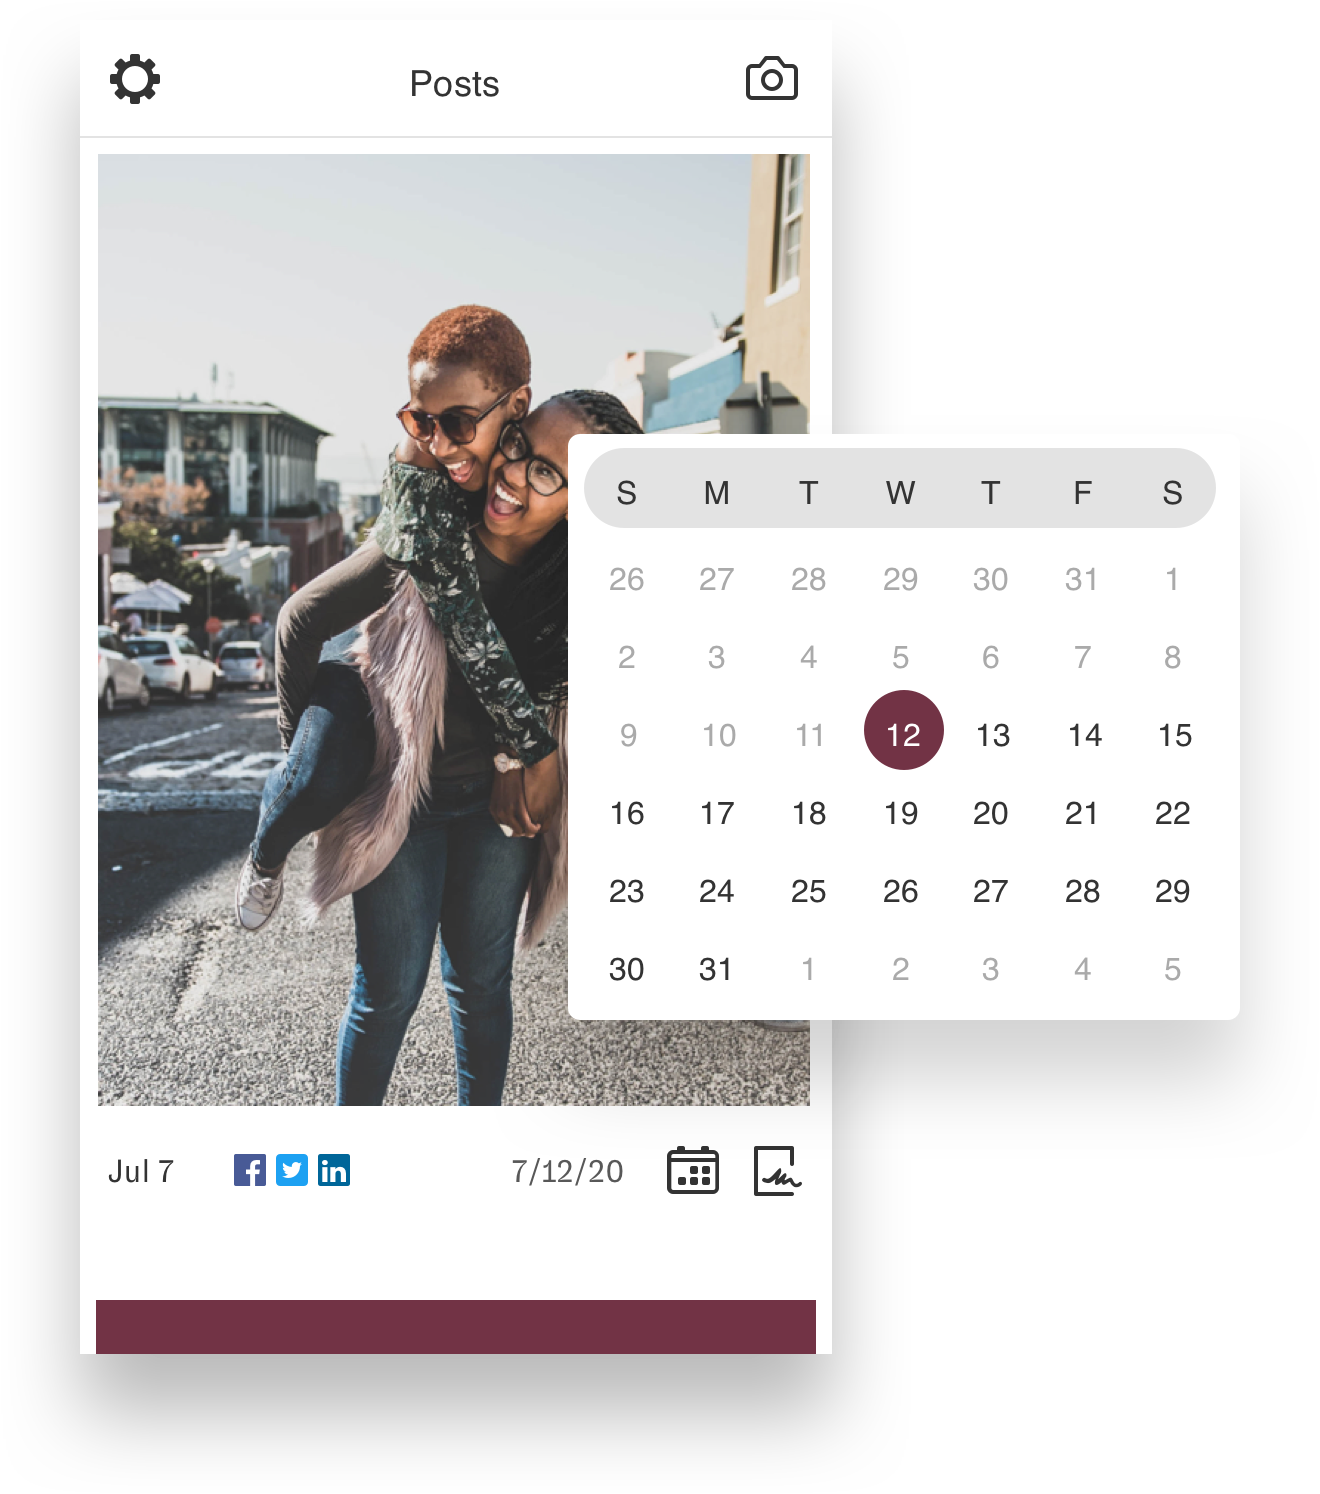 Nuvi Capture looks and functions similarly to Instagram. Take a picture, put the caption on it, getting customer signatures, and post at the day and time you set. Easy as that. For this example and image of two girls, one giving the other a piggy back, is displayed in capture. The two girls are laughing. Hovering over the image and to the right is a calendar. The dates are set up in the traditional grid pattern with the days listed above with their first letter only in a grey area